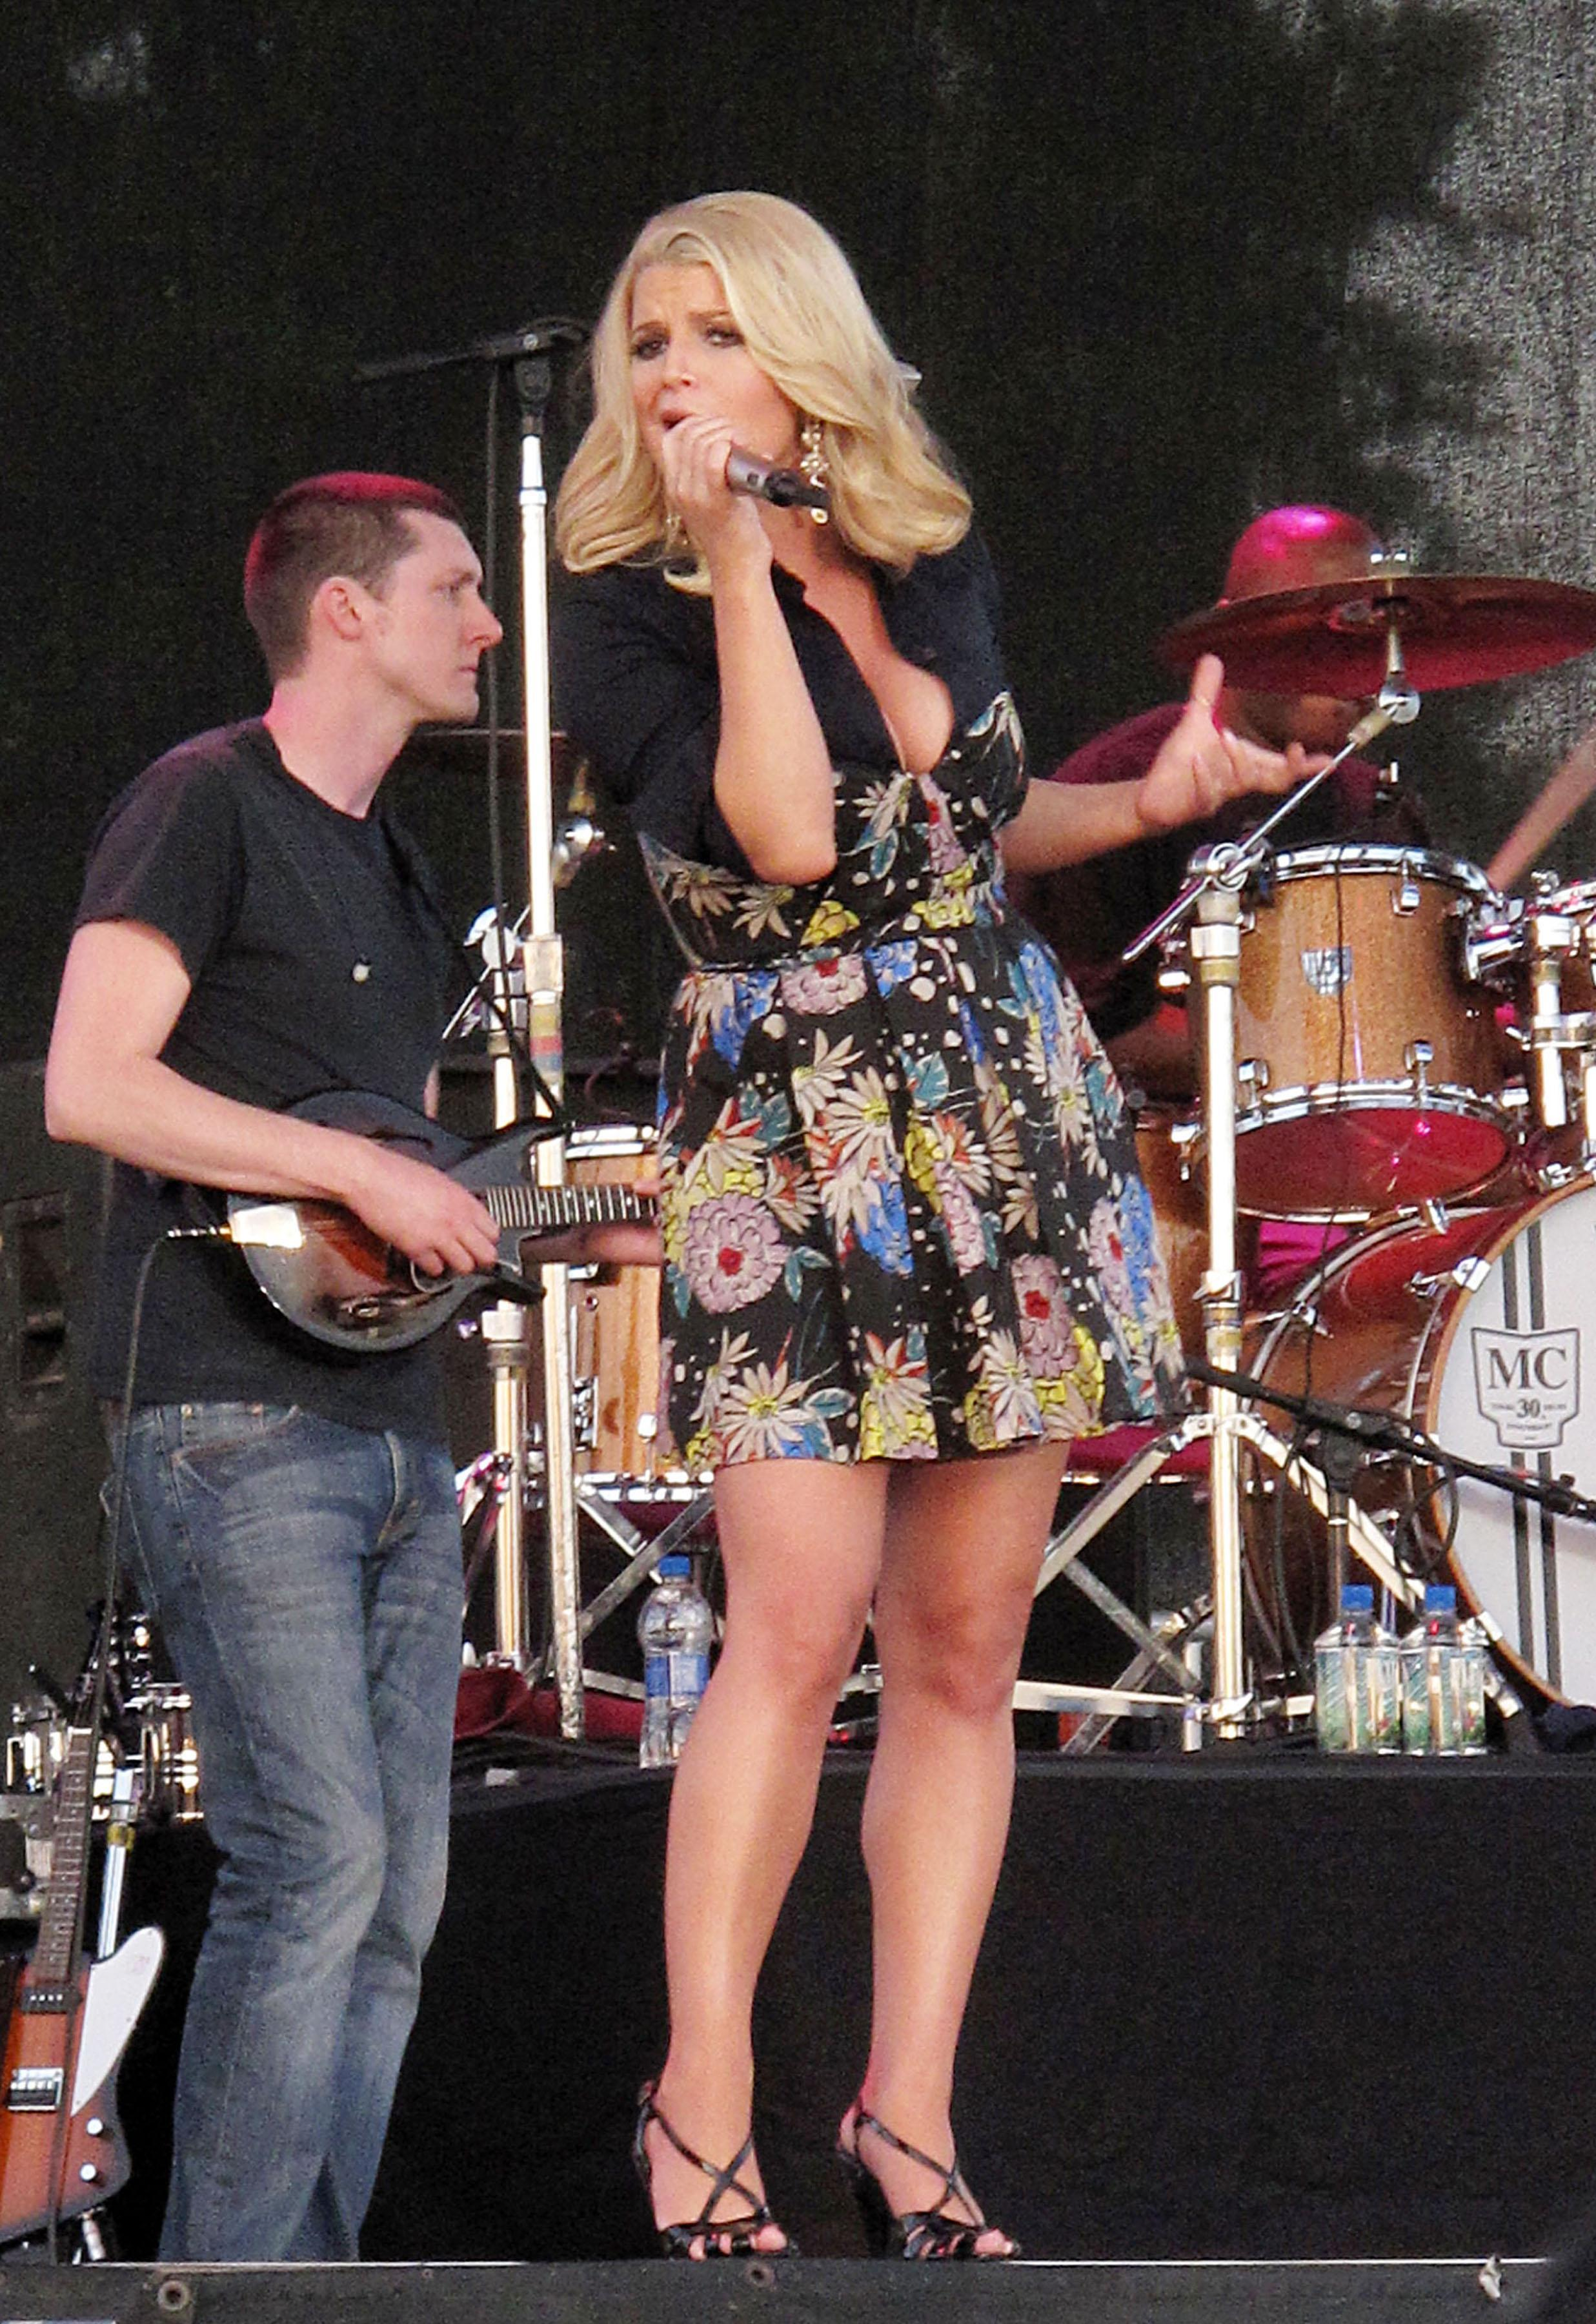 71921_Jessica_Simpson_performs_live_at_the_Dixon_May_Fair_and_Carnival_128_122_206lo.jpg